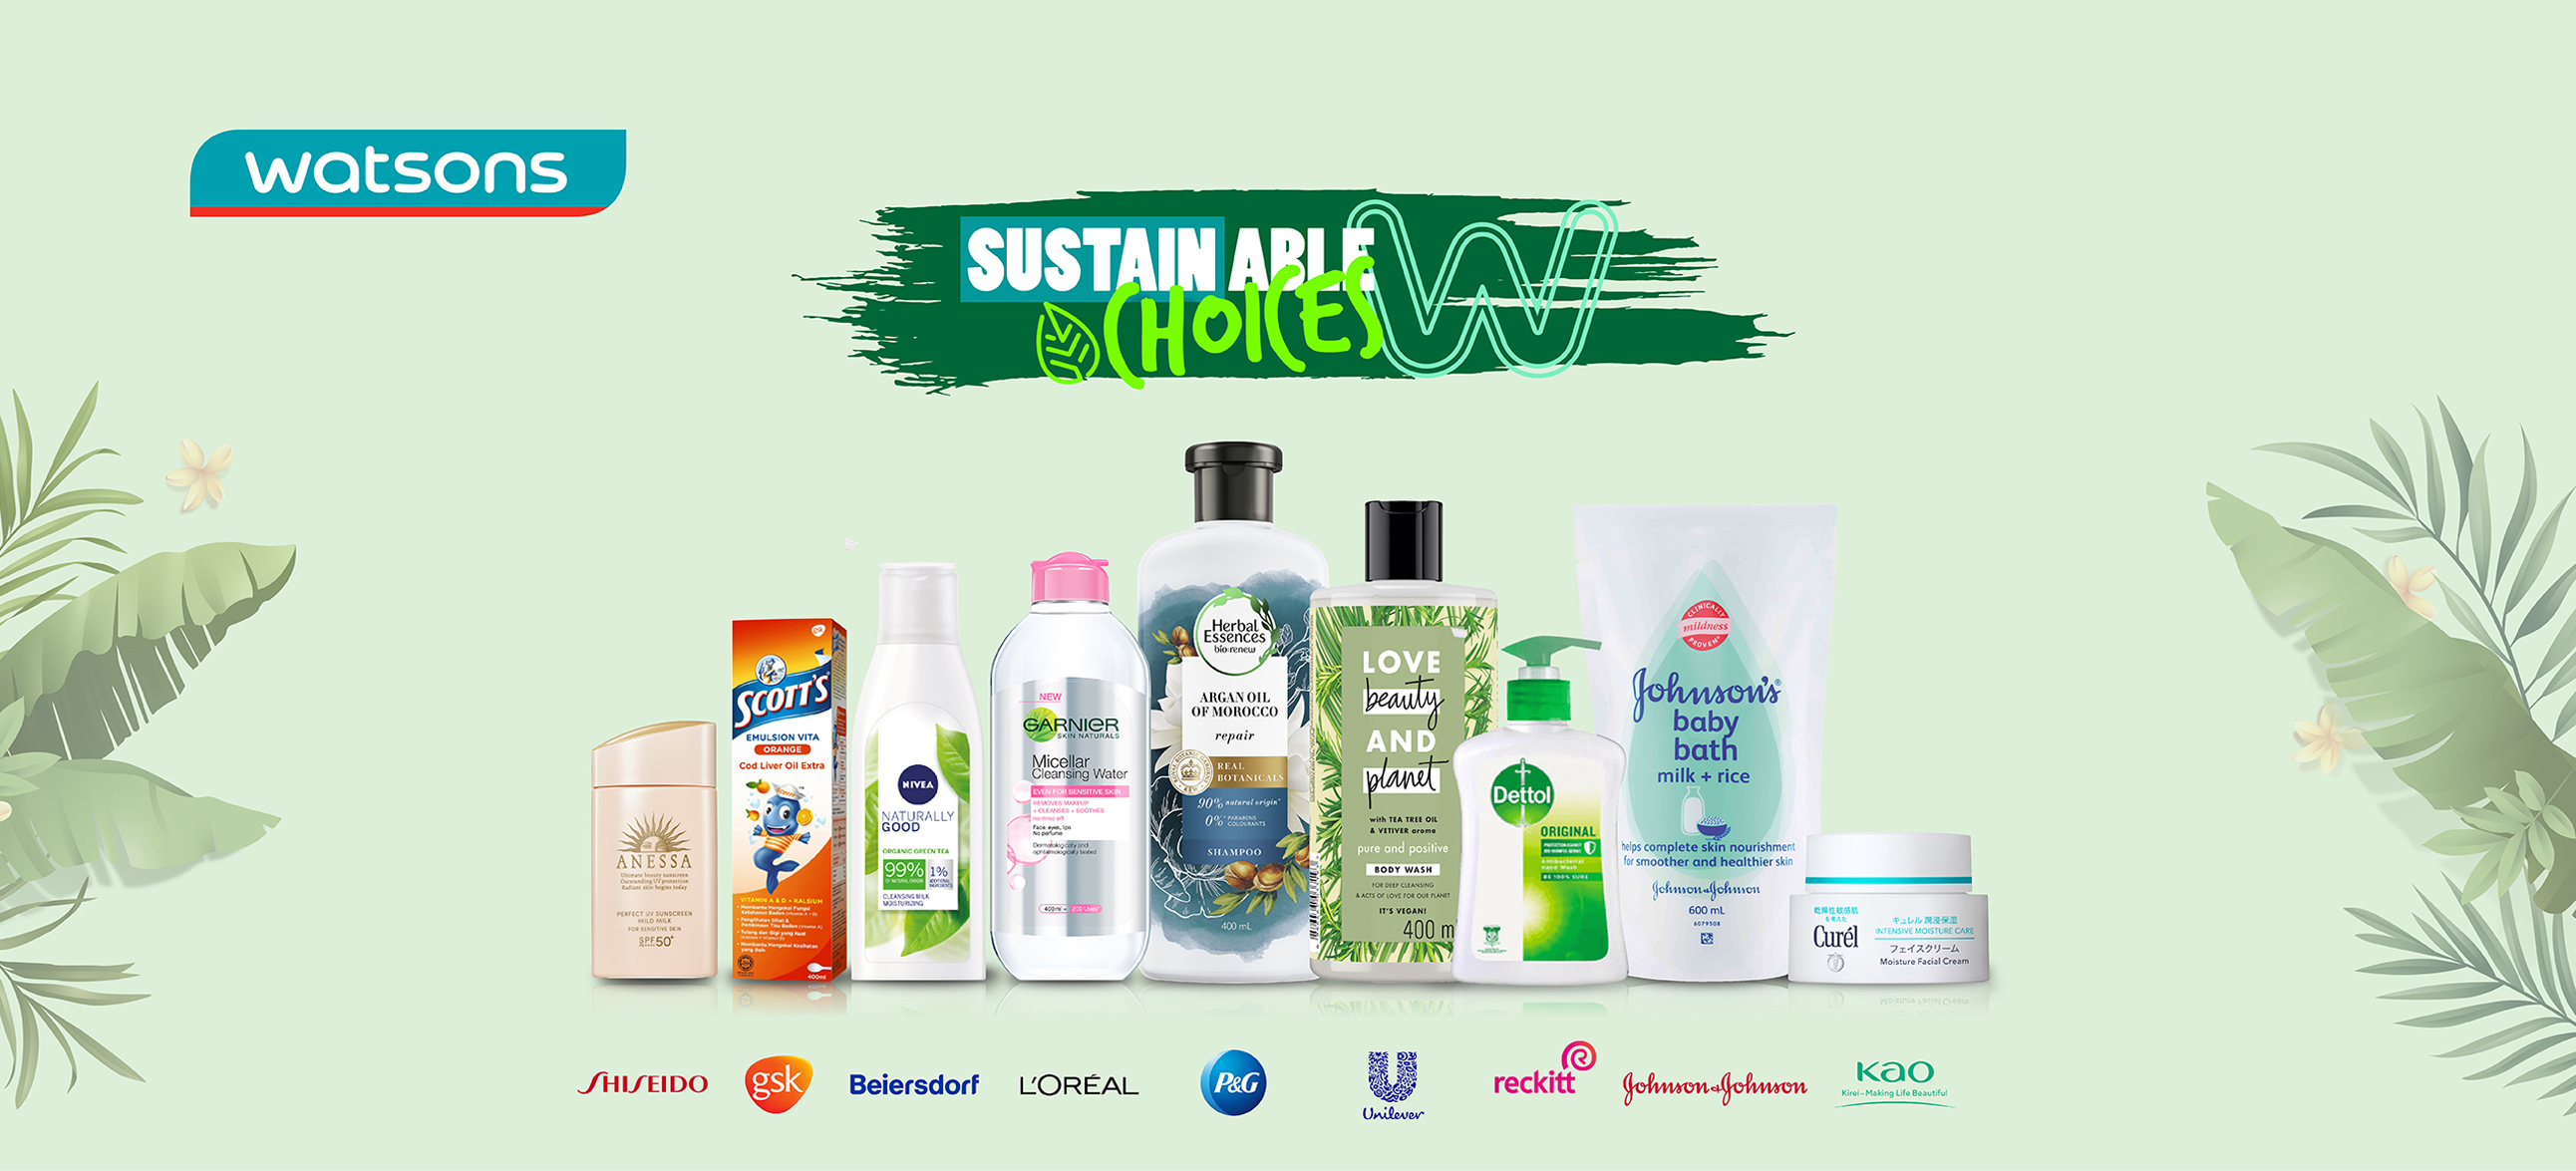 Watsons Sustsainable Choices Banner Watsons Collaborates with Global Supplier Partners to Launch Over 1,600 Sustainable Choices